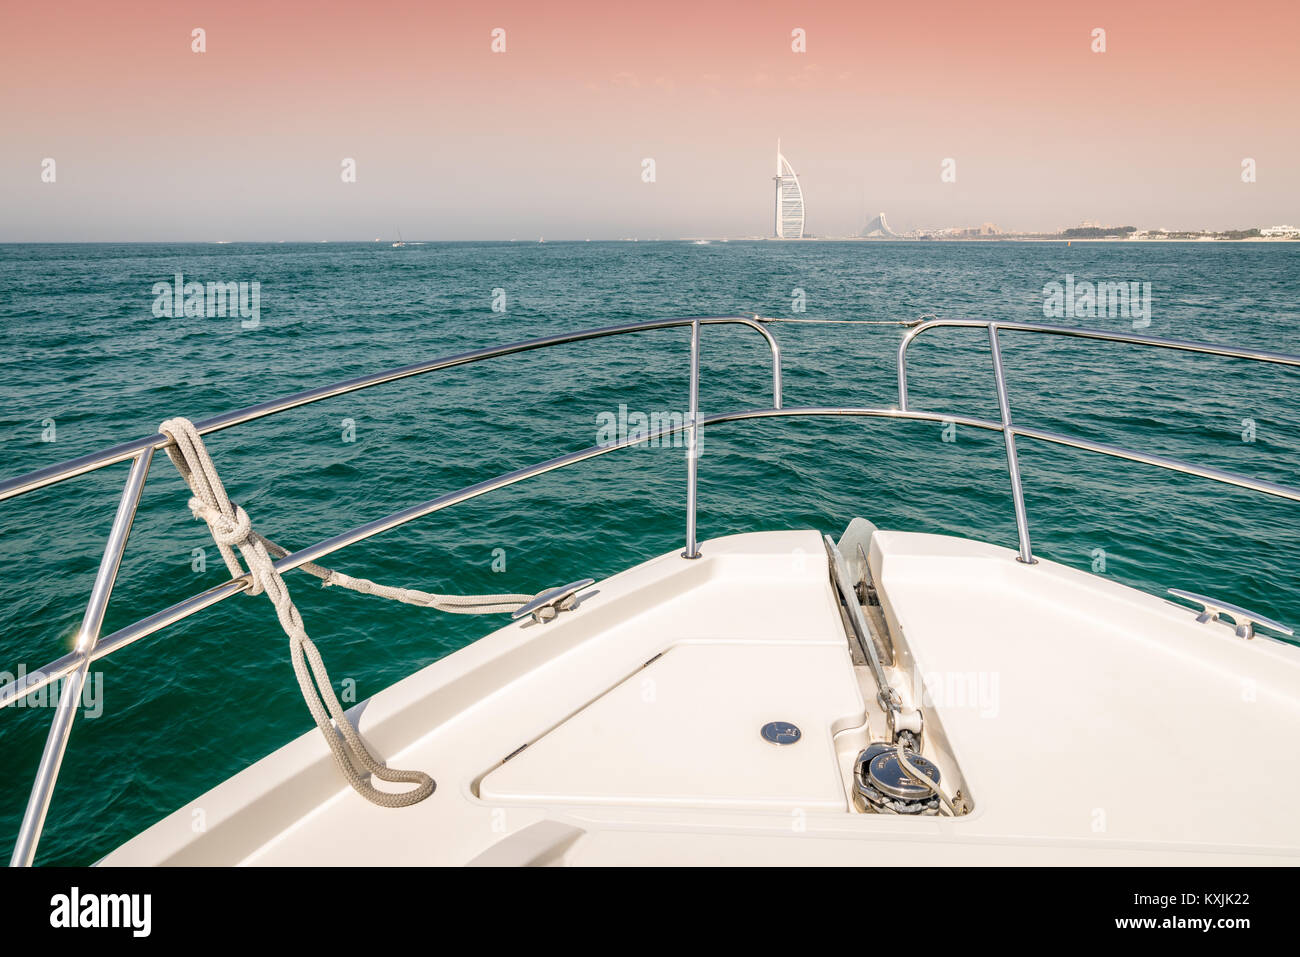 View of Dubai coast from the bow of a yacht - Stock Image